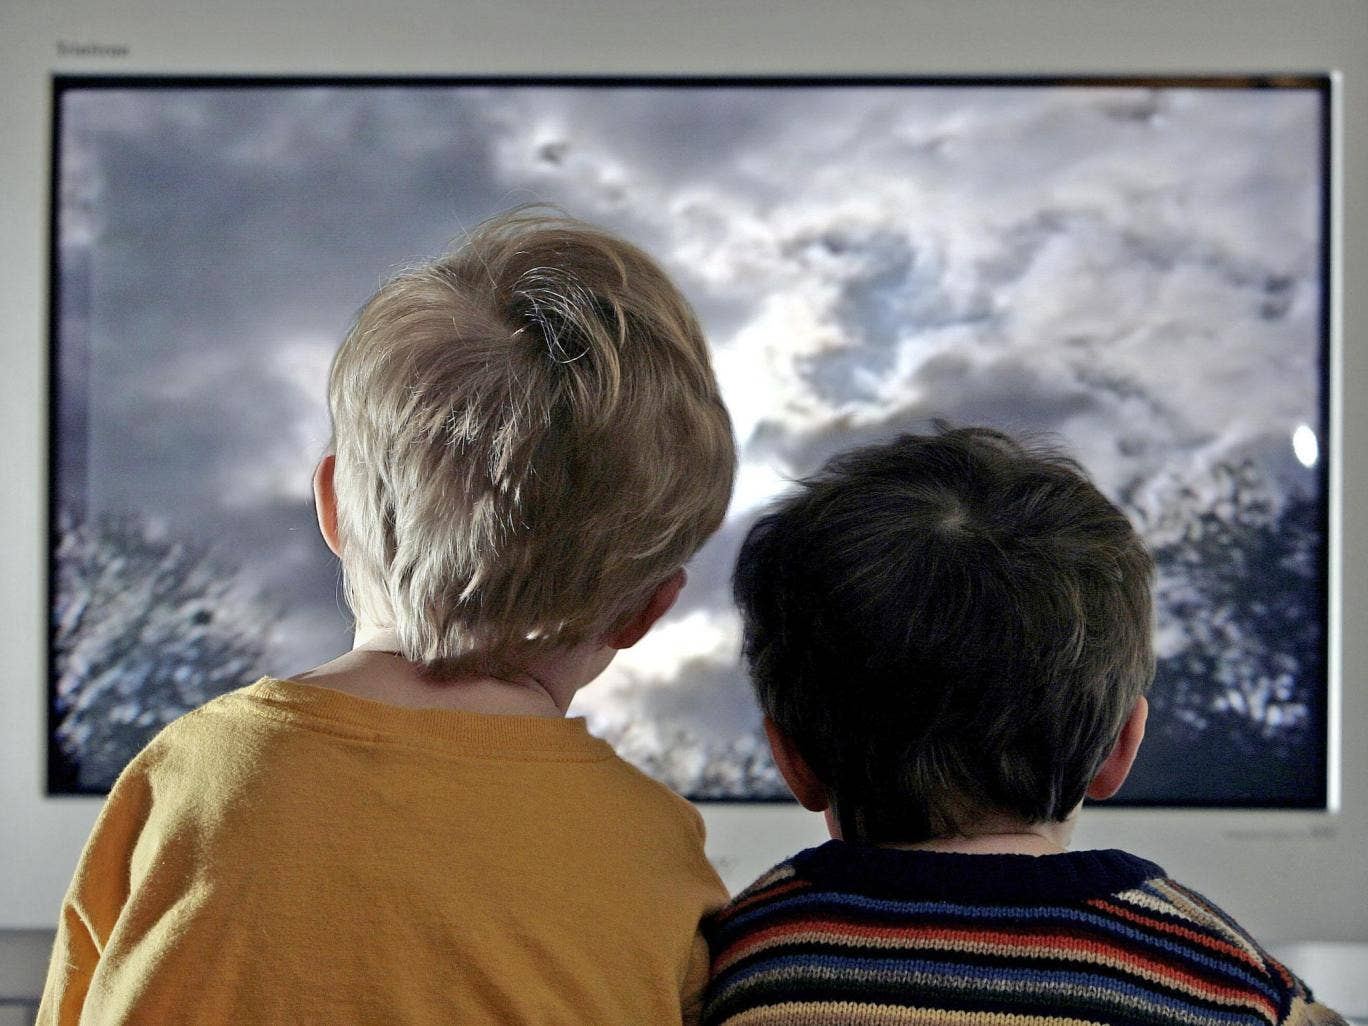 Five-year-olds who view three hours or more a day are at no greater risk of emotional problems